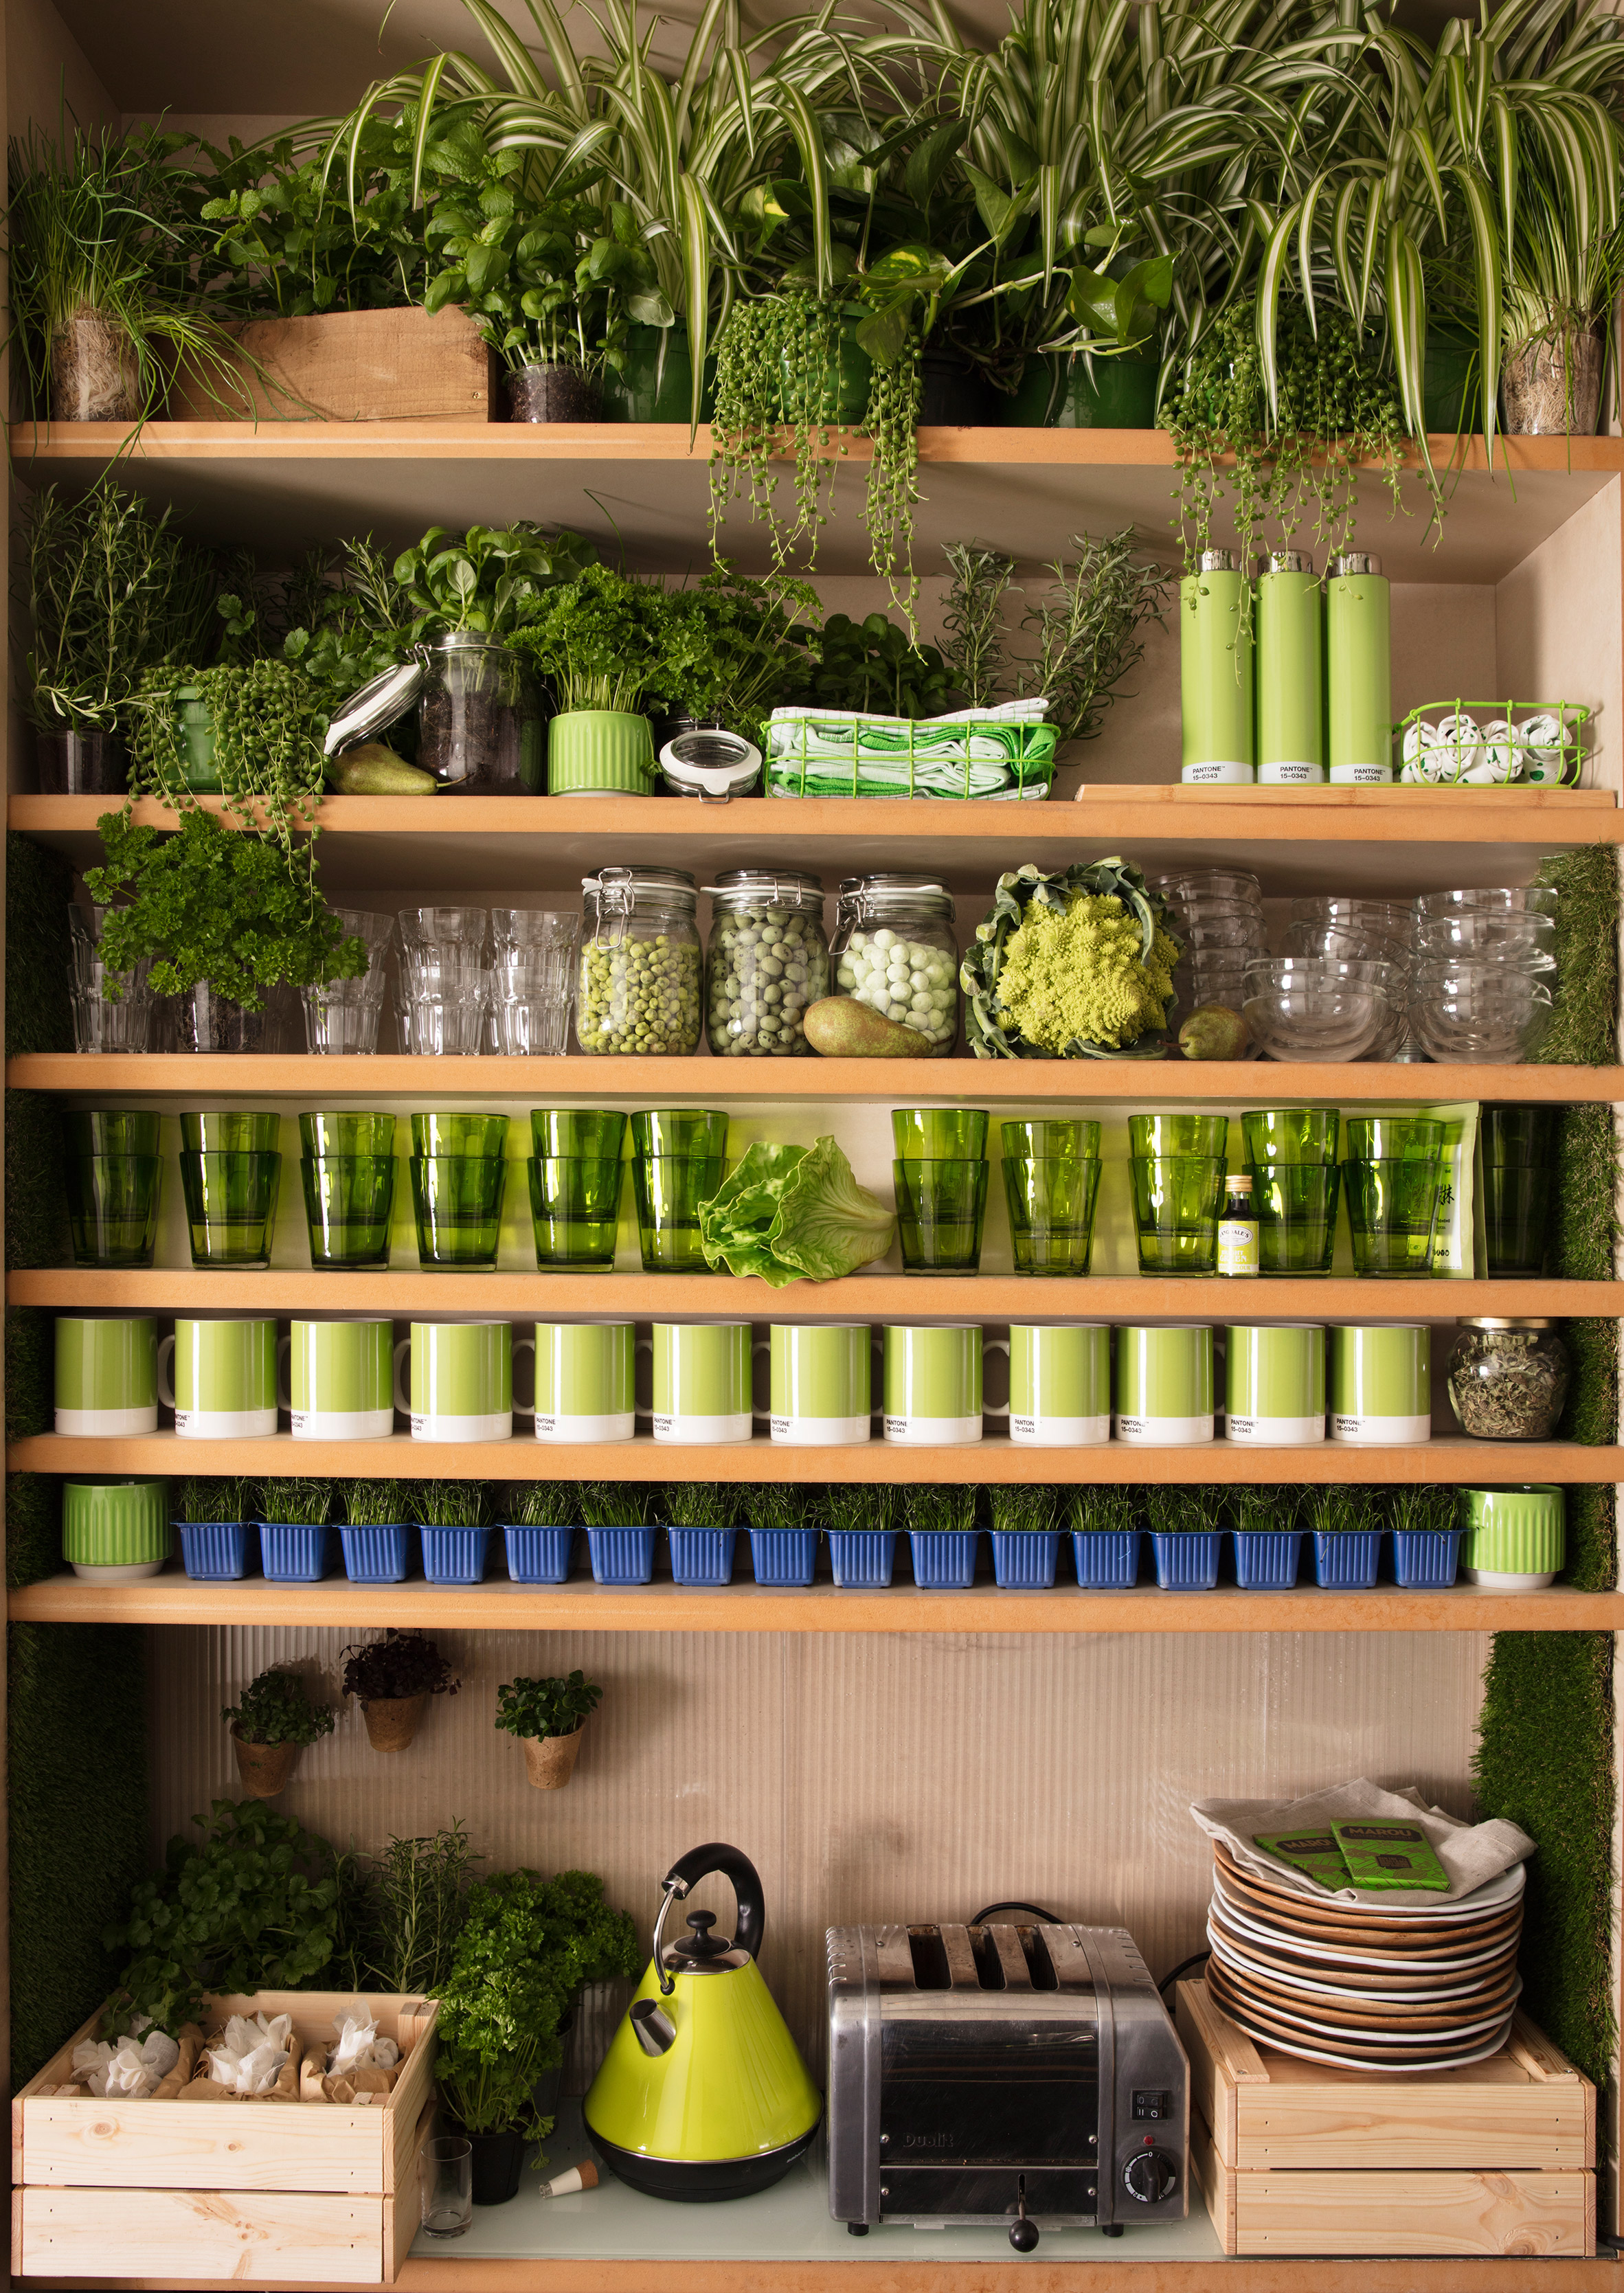 greenery-apartment-installation-airbnb-pantone-design_dezeen_2364_col_8.jpg